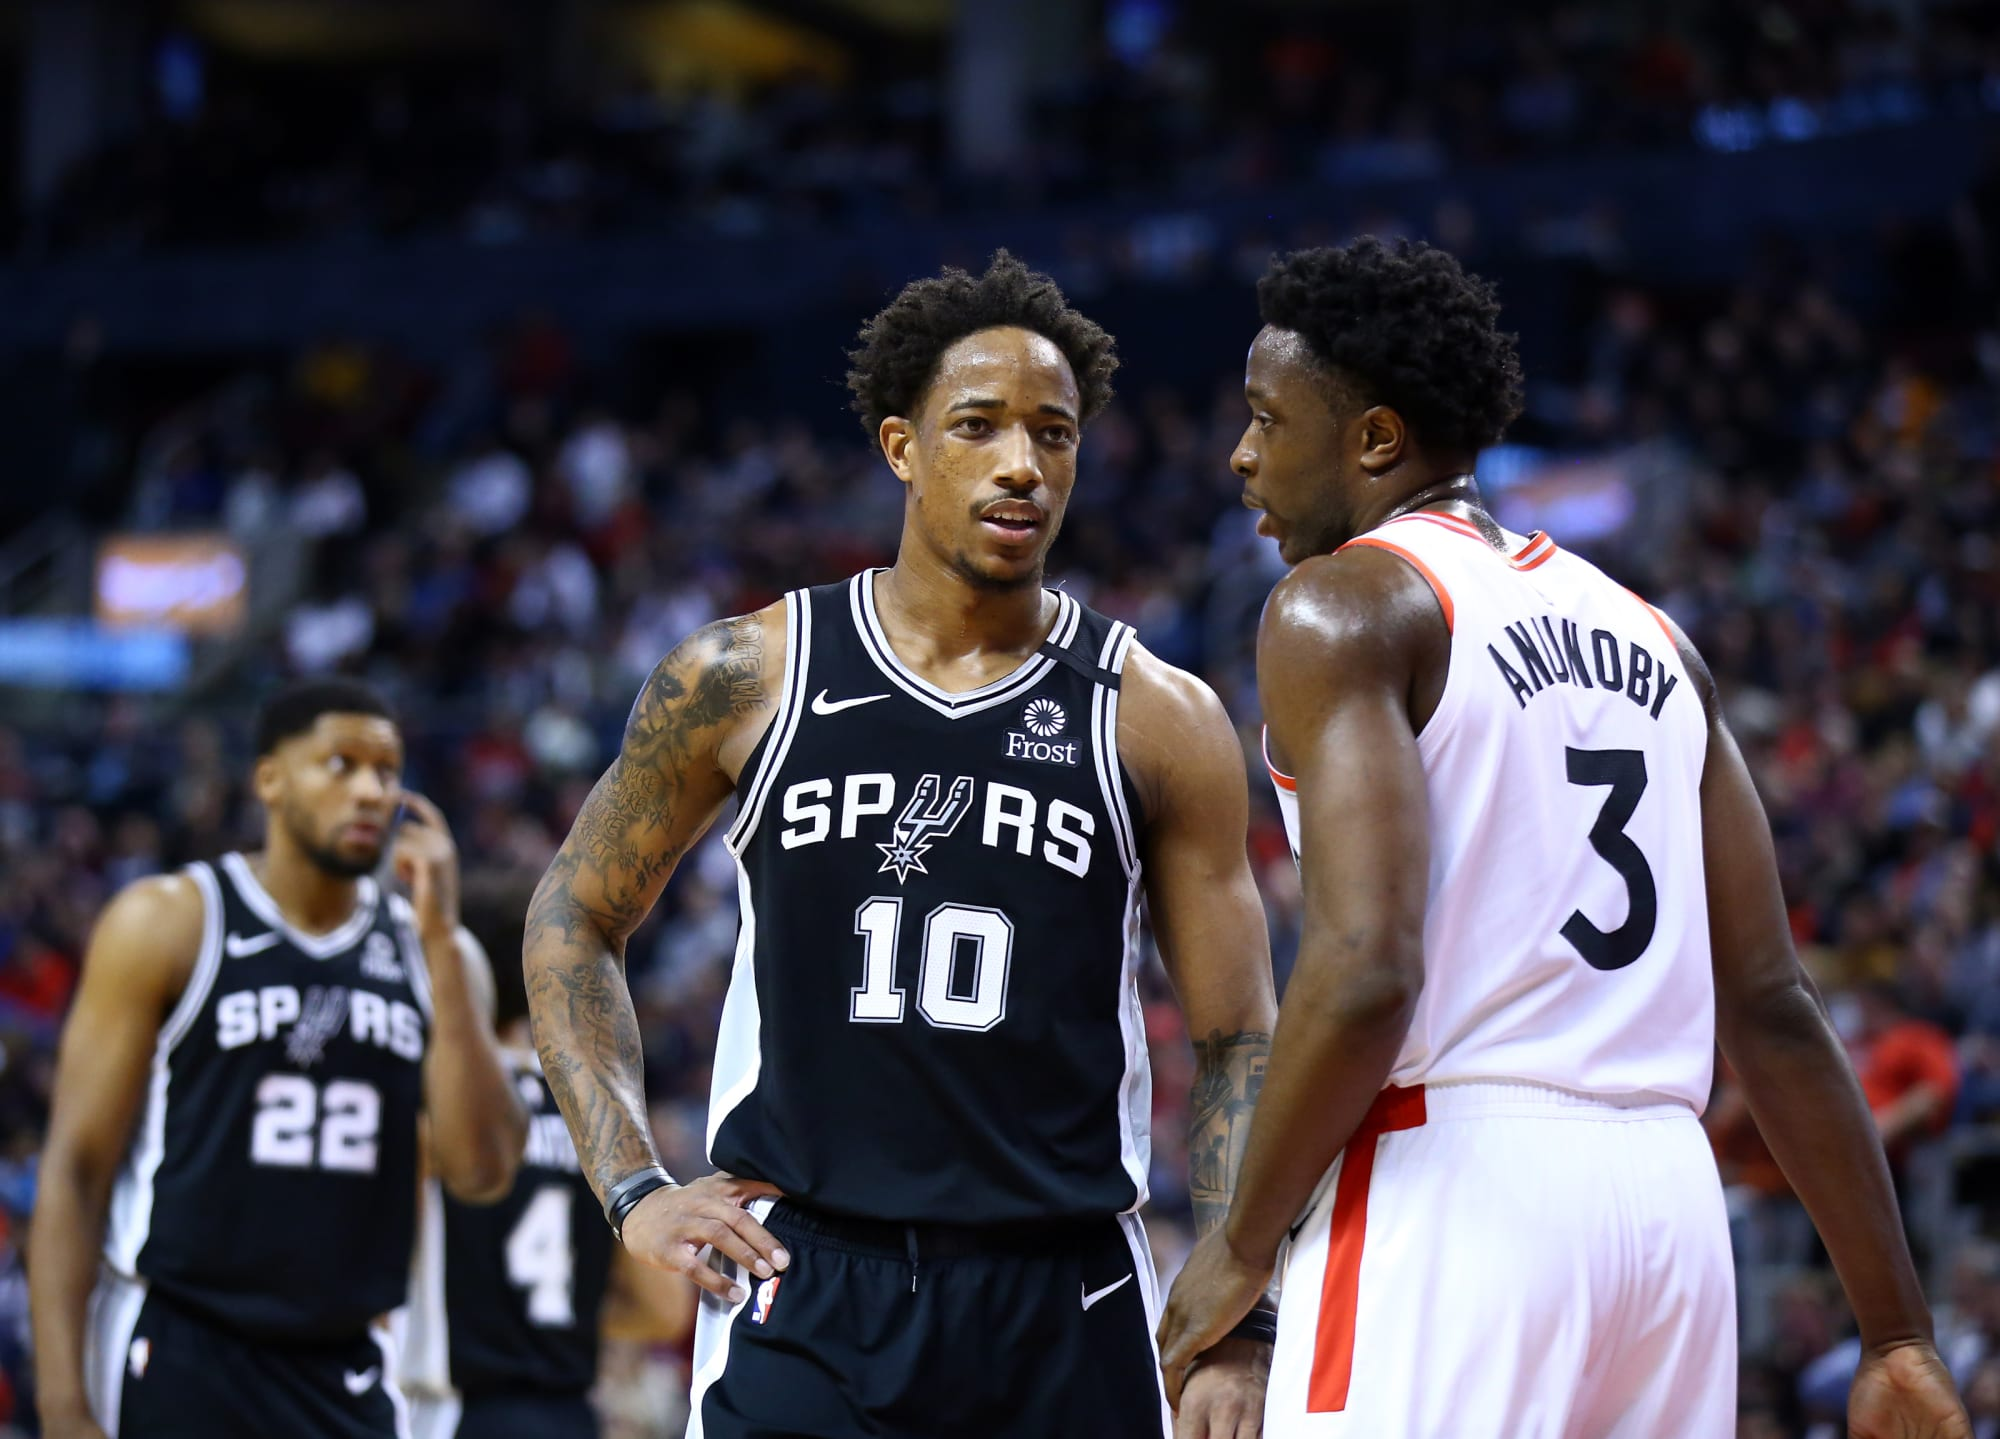 Raptors: Will the latest Spurs rumors DeMar DeRozan back to Toronto?